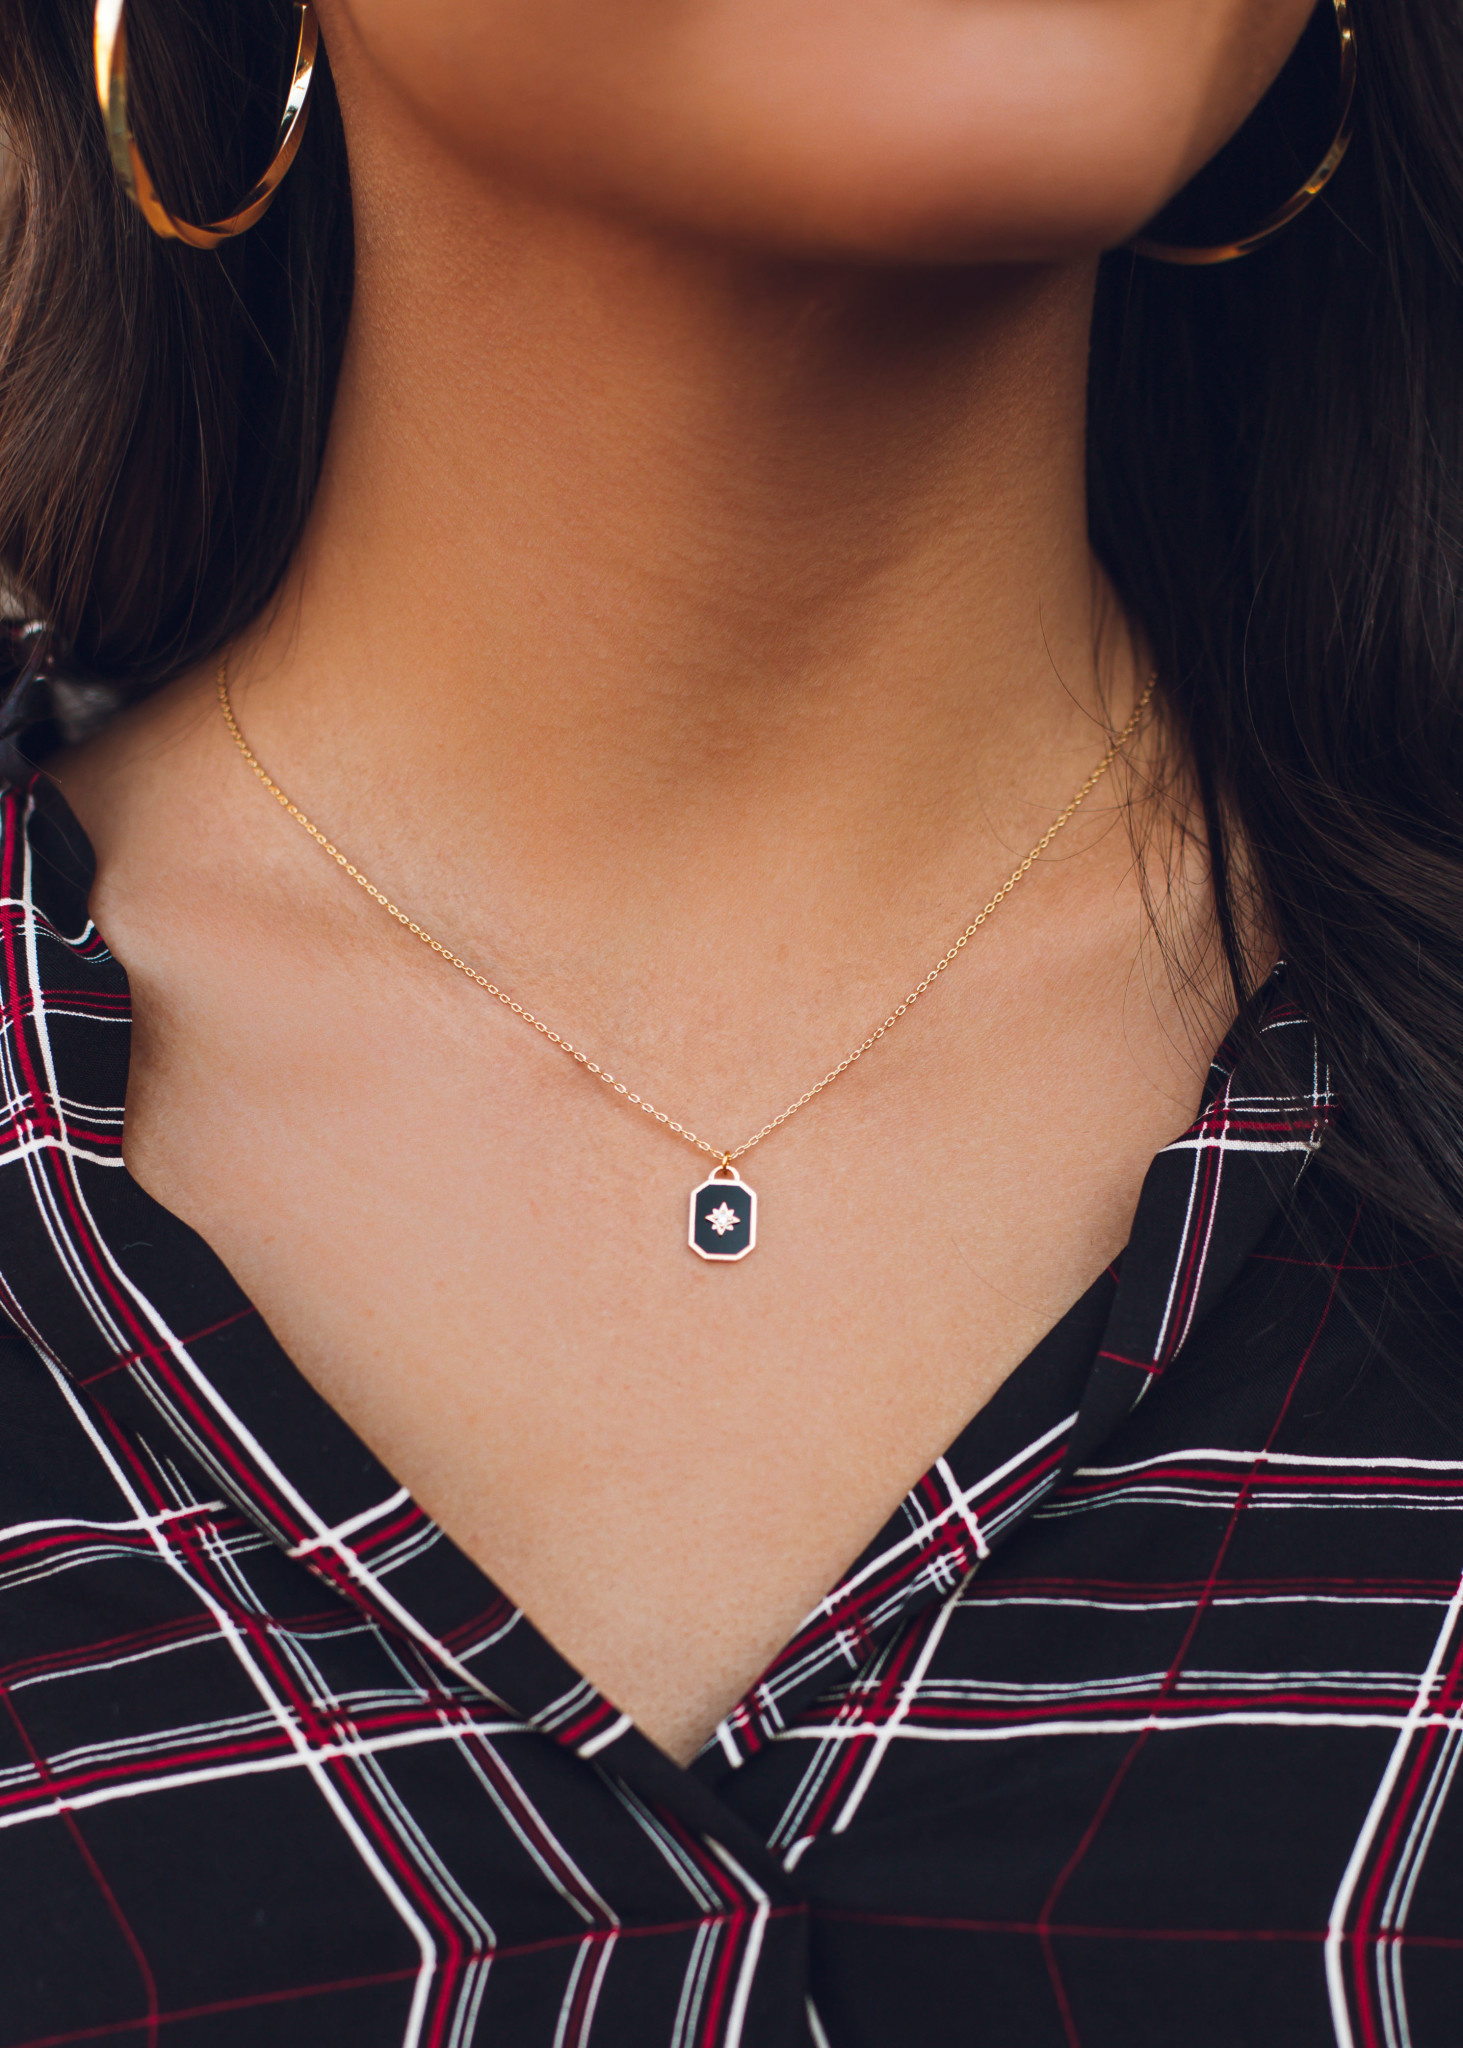 WINTER DATE NECKLACE